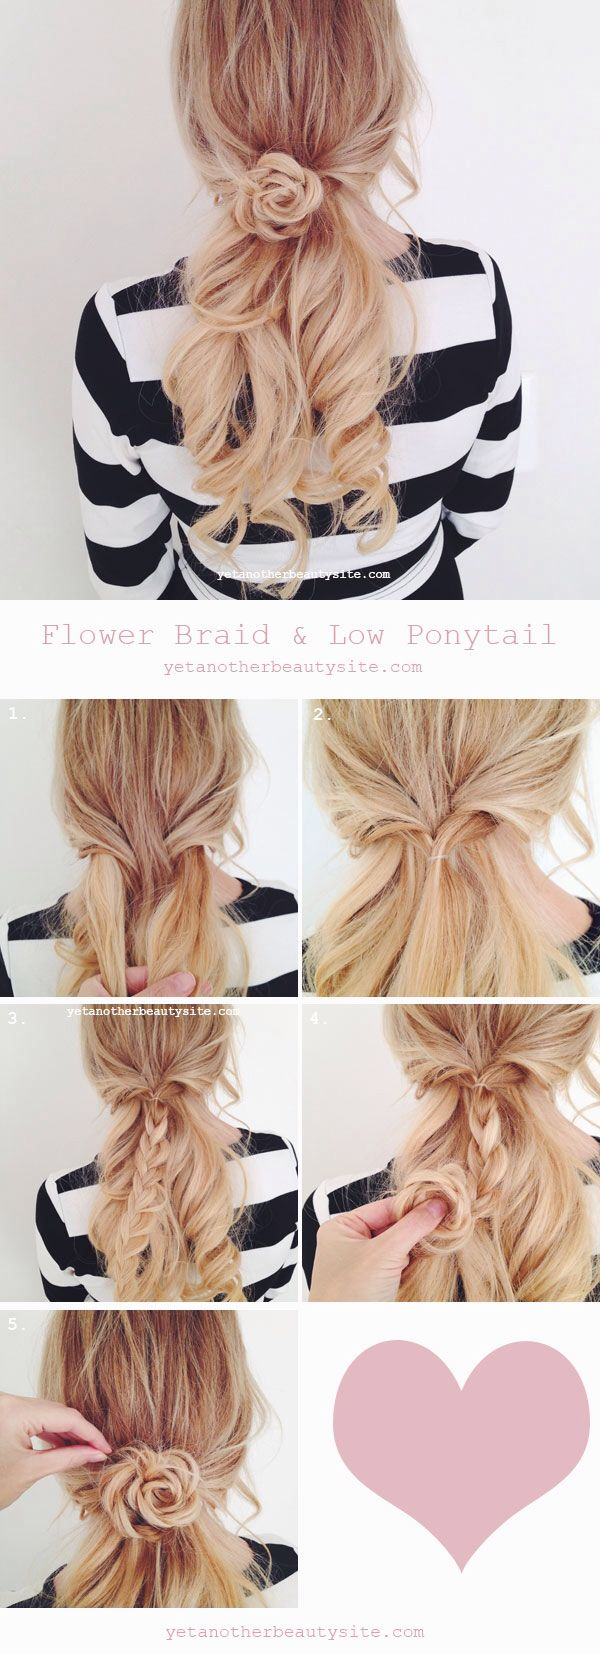 5 Cute Easy Hairstyles Tutorial:How To | Quick hairstyles, Diy hair ...